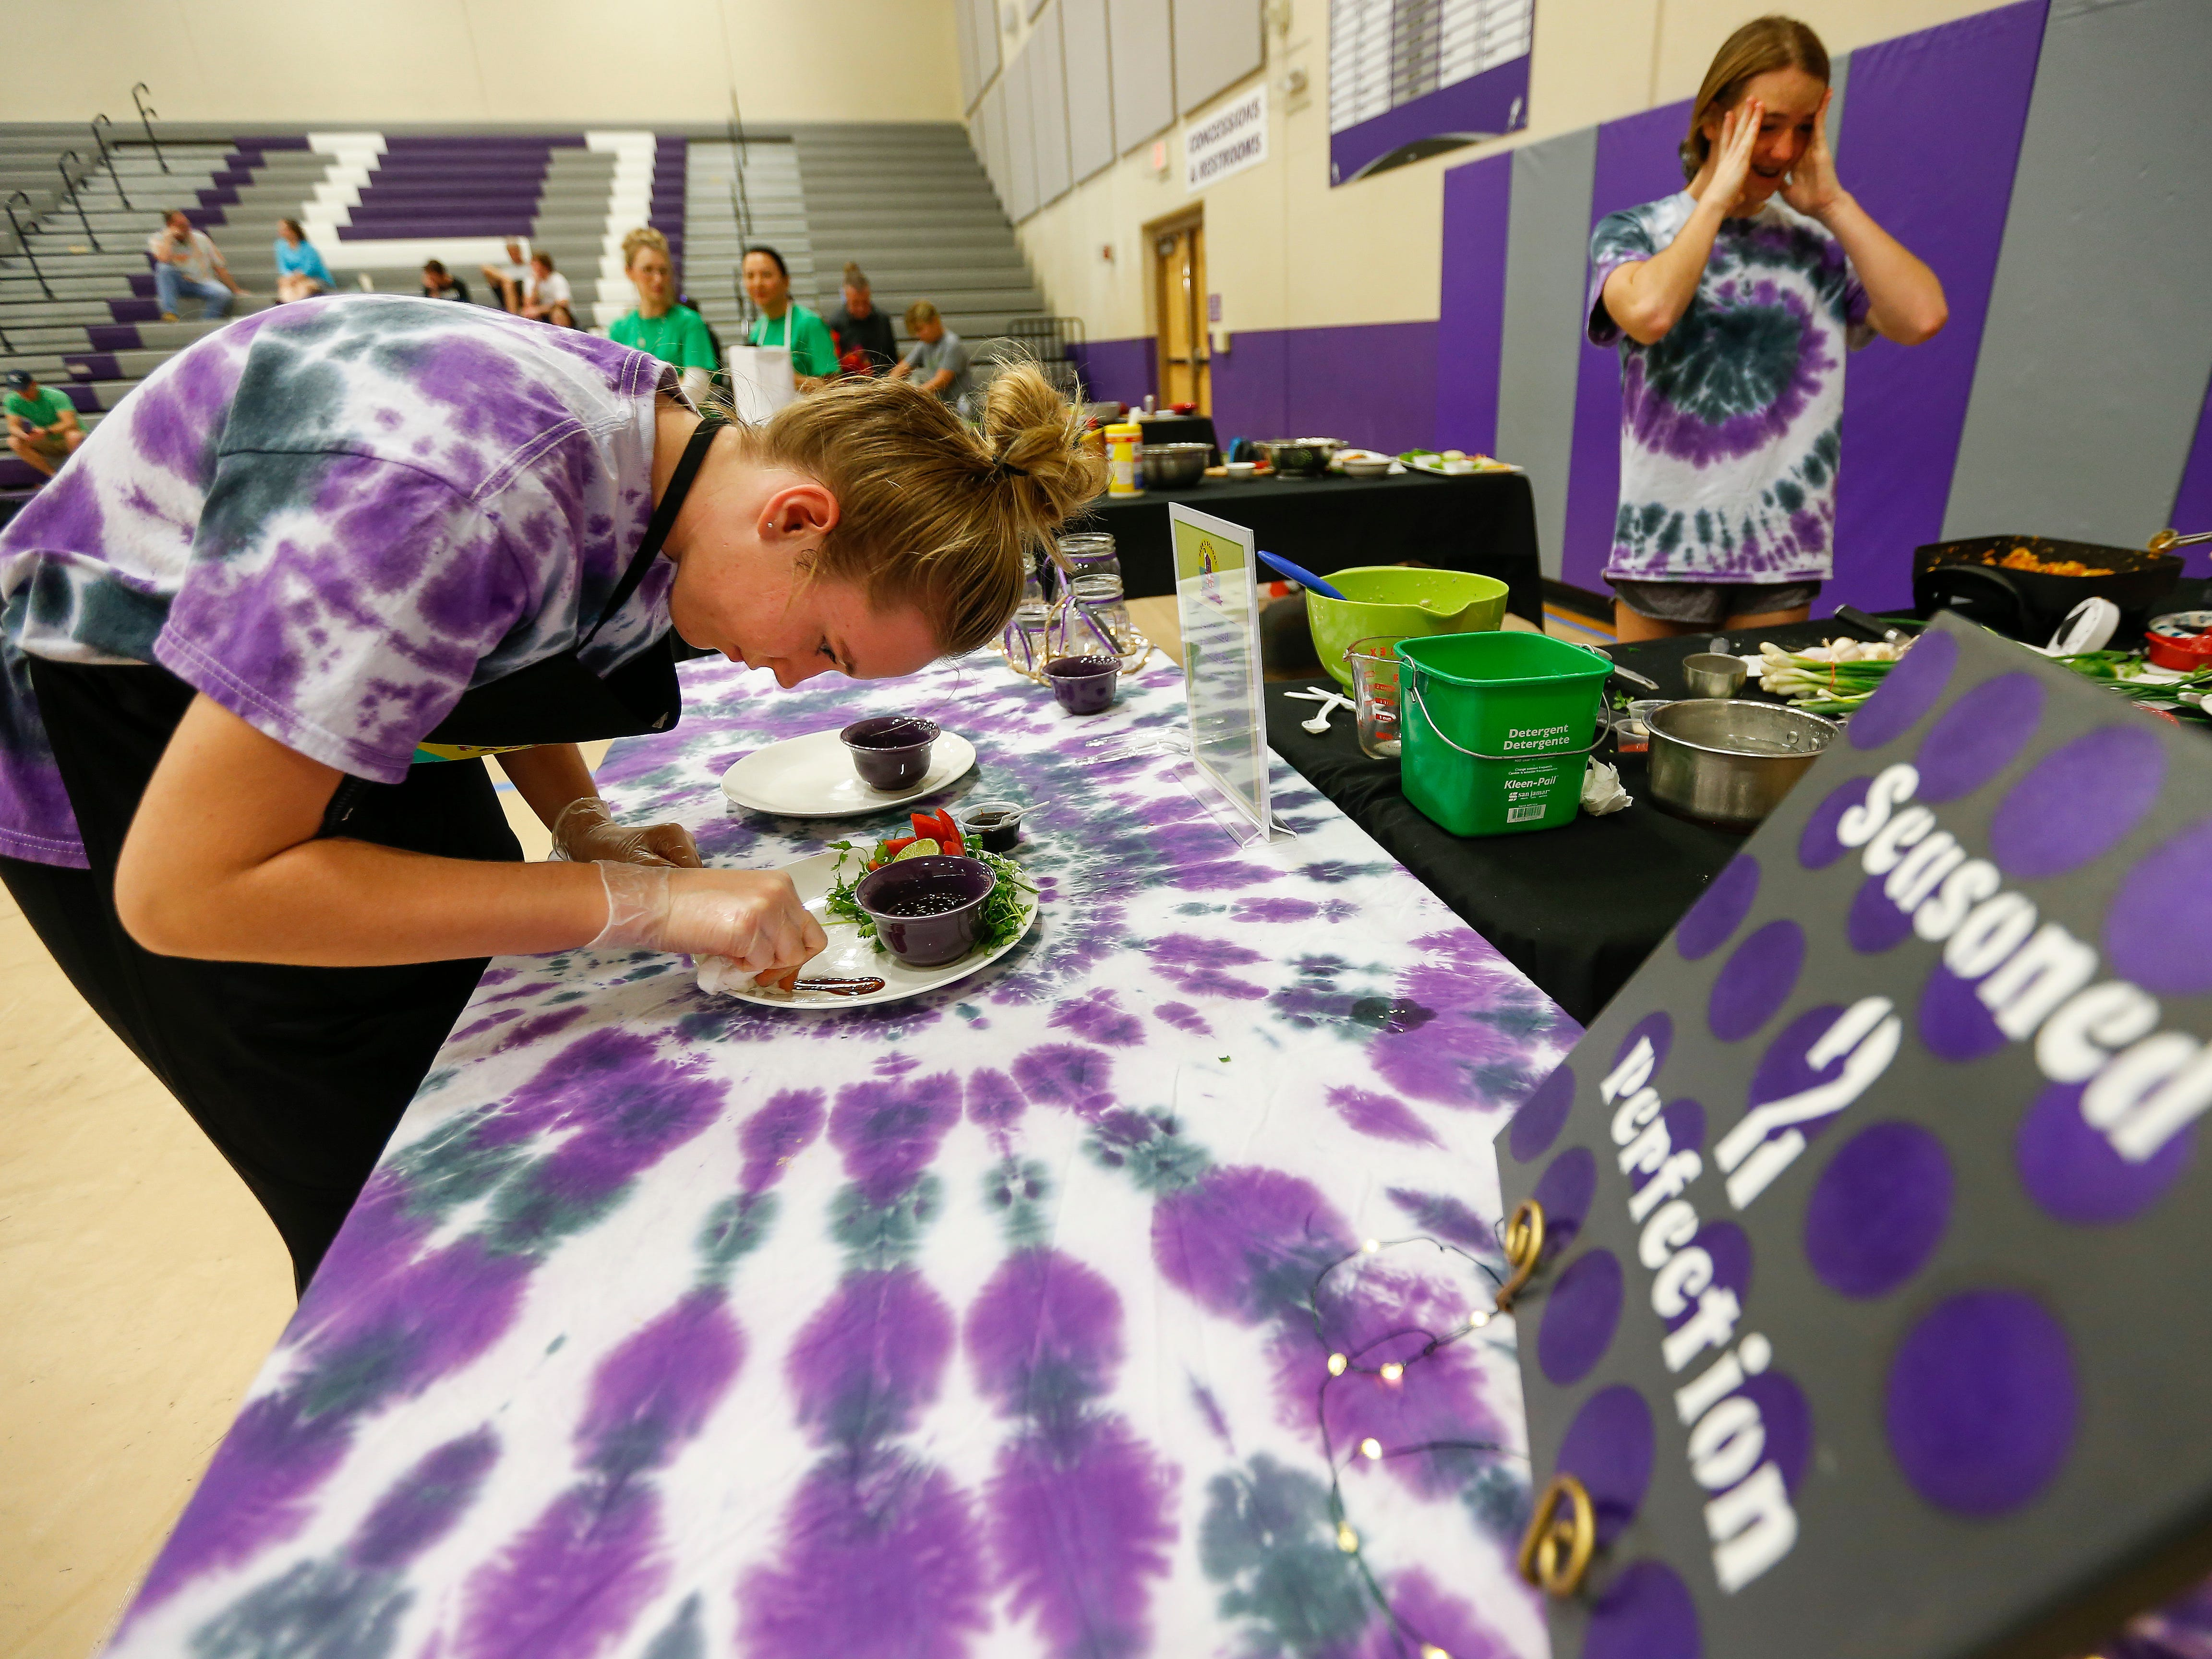 Students prepare their unique takes on Asian fusion dishes during the third annual Junior Chef Competition at Hickory Hills Middle School on Saturday, Sept. 29, 2018.